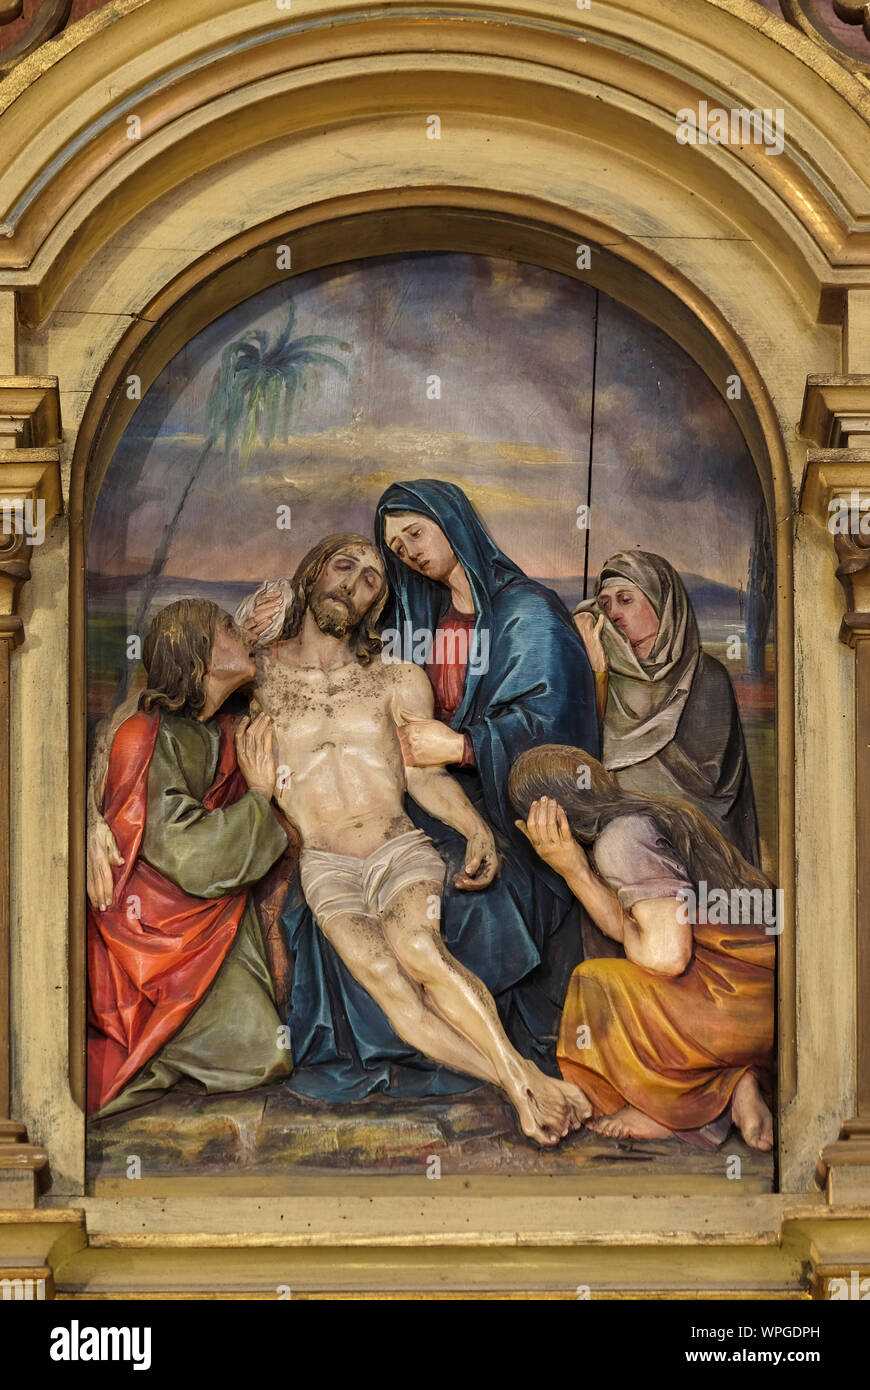 13th Stations Of The Cross Jesus Body Is Removed From The Cross Saint John The Baptist Church In Zagreb Croatia Stock Photo Alamy